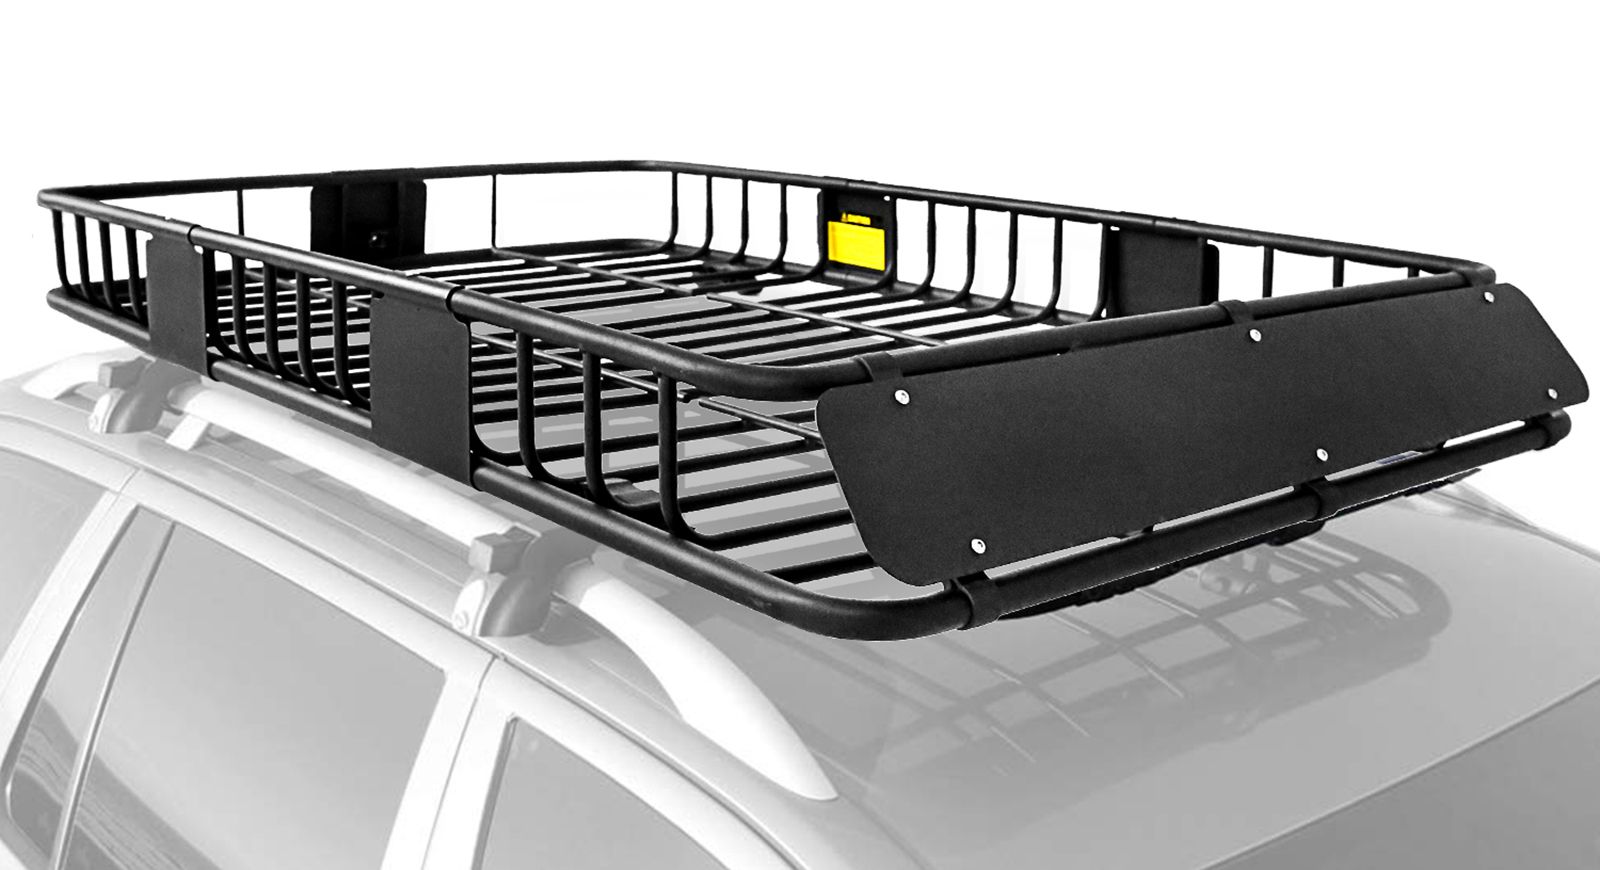 leader accessories roof rack cargo carrier rooftop carrier basket with extension car top luggage holder 64 x 39 x 6 black universal for suv cars